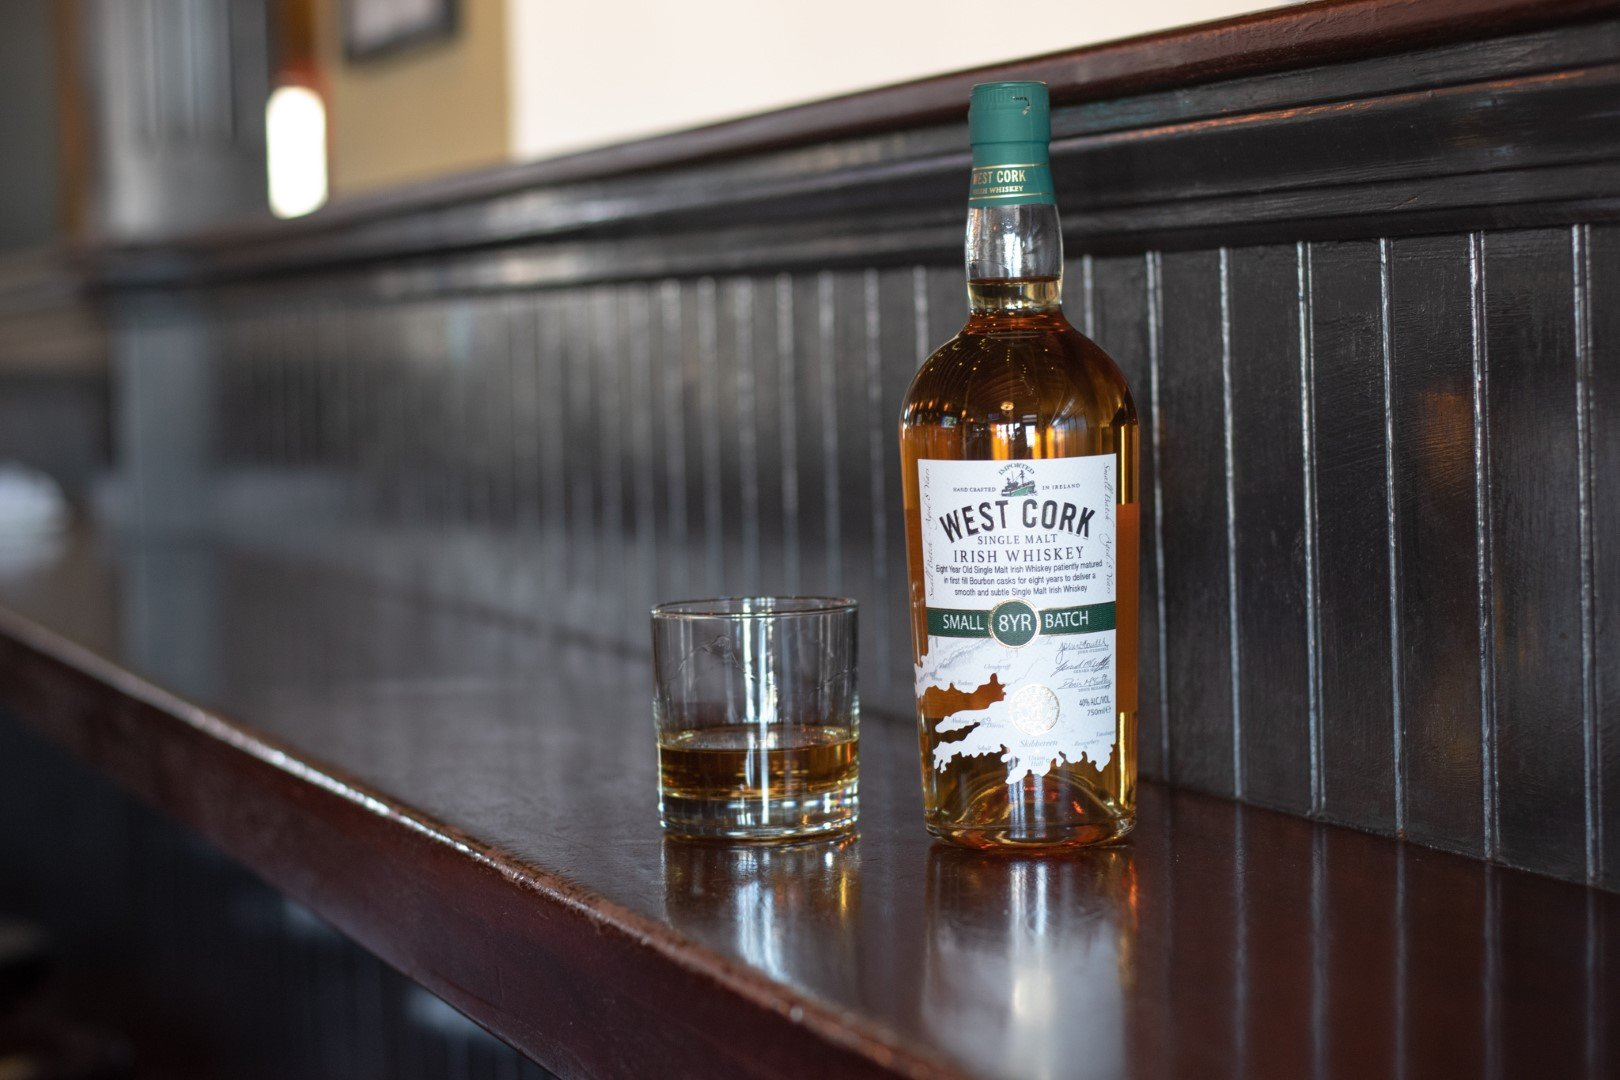 West Cork Small Batch Irish Whiskey 8 Years Old